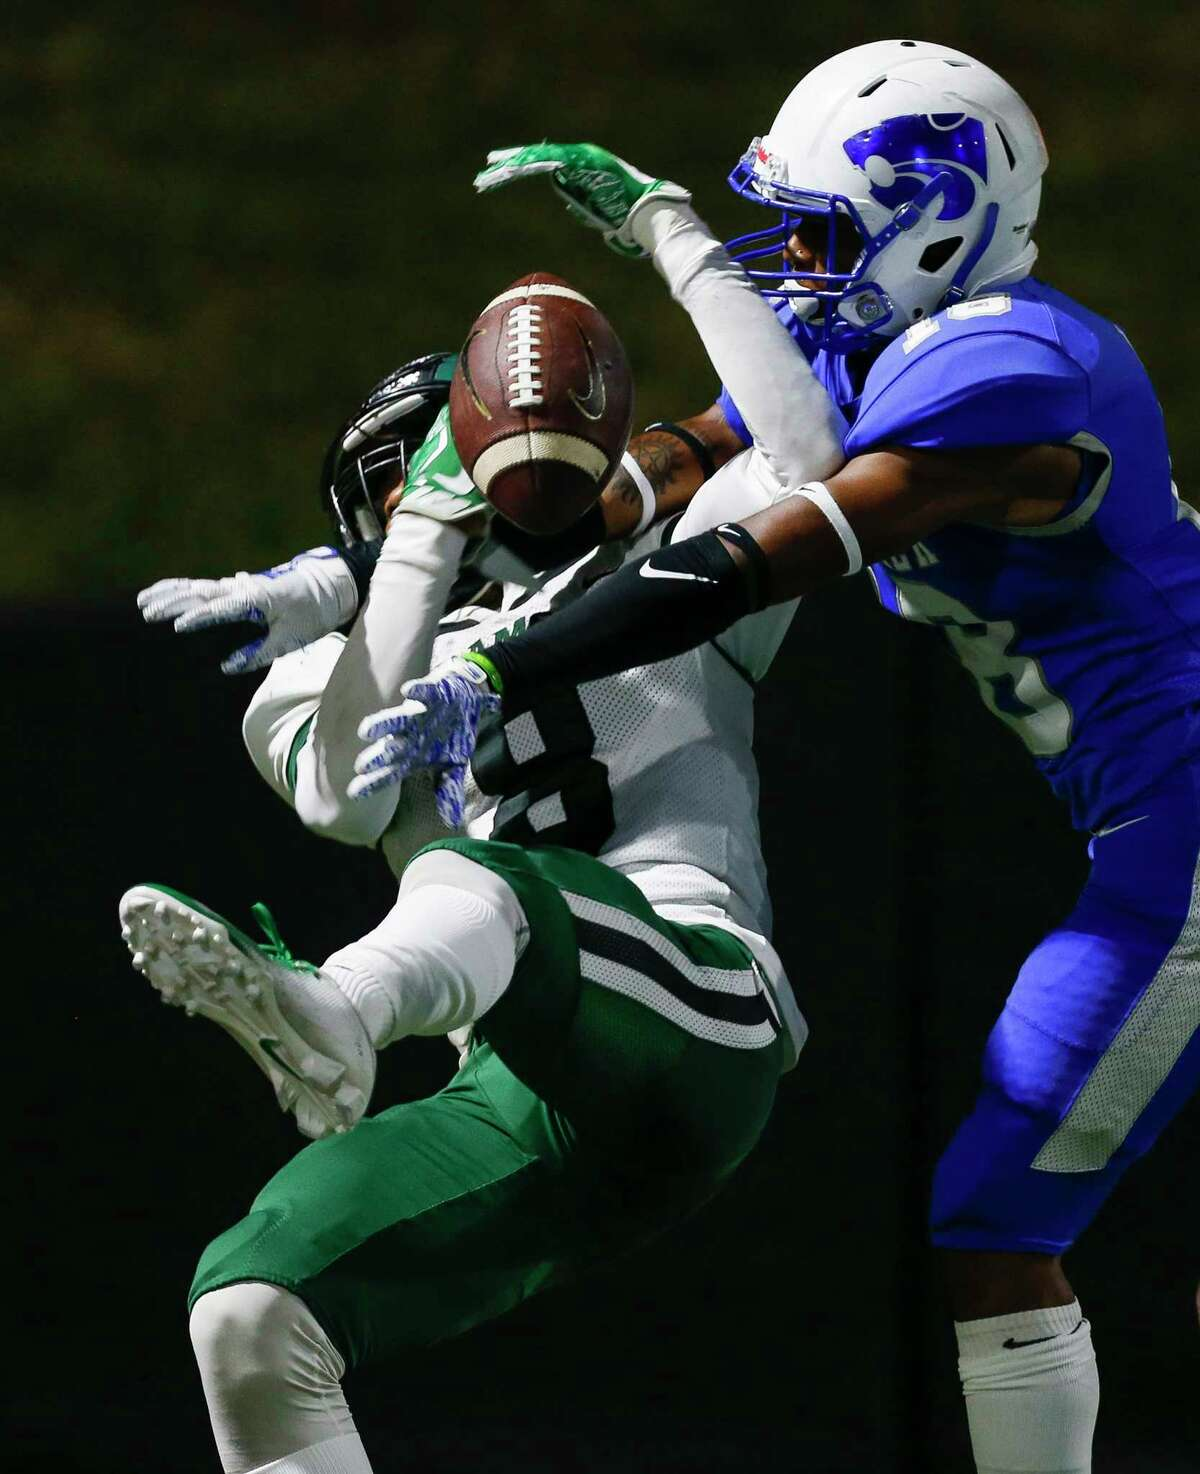 Cy Creek defensive back Kamari (18) breaks up a pass intended for Mayde Creek wide receiver JaCoby Wilson (8) during the second half of the during the Texas State Playoffs Division II Area Round Thursday, Nov. 21, 2019, in Houston. Cy Creek won 35-14.